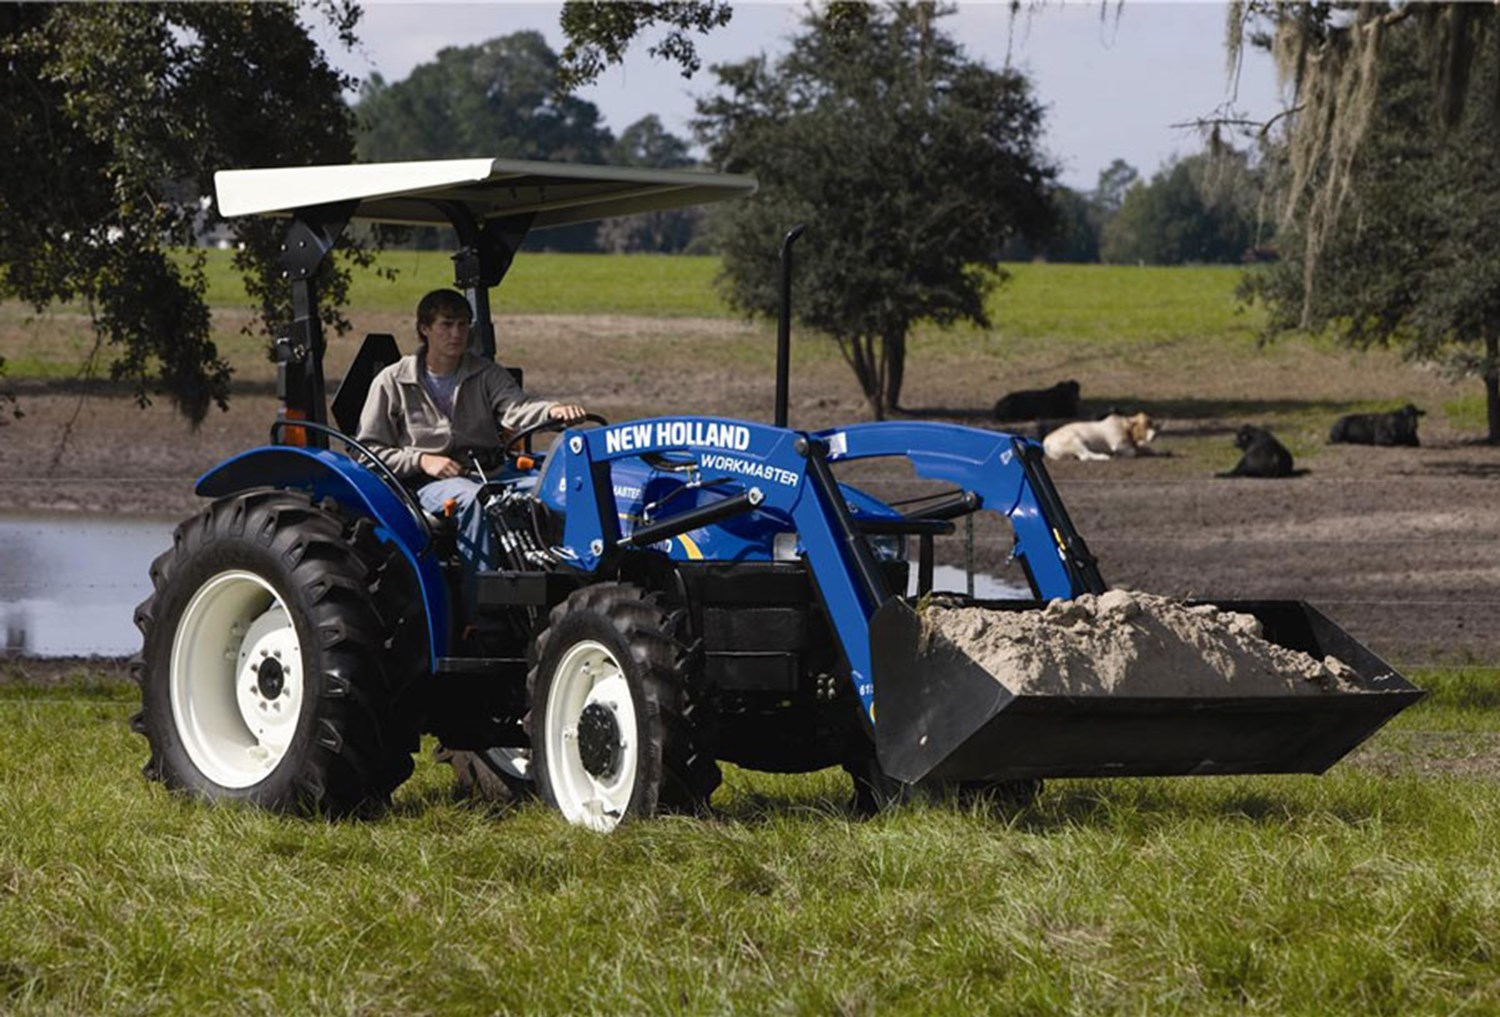 NEW HOLLAND WORKMASTER 65 2WD